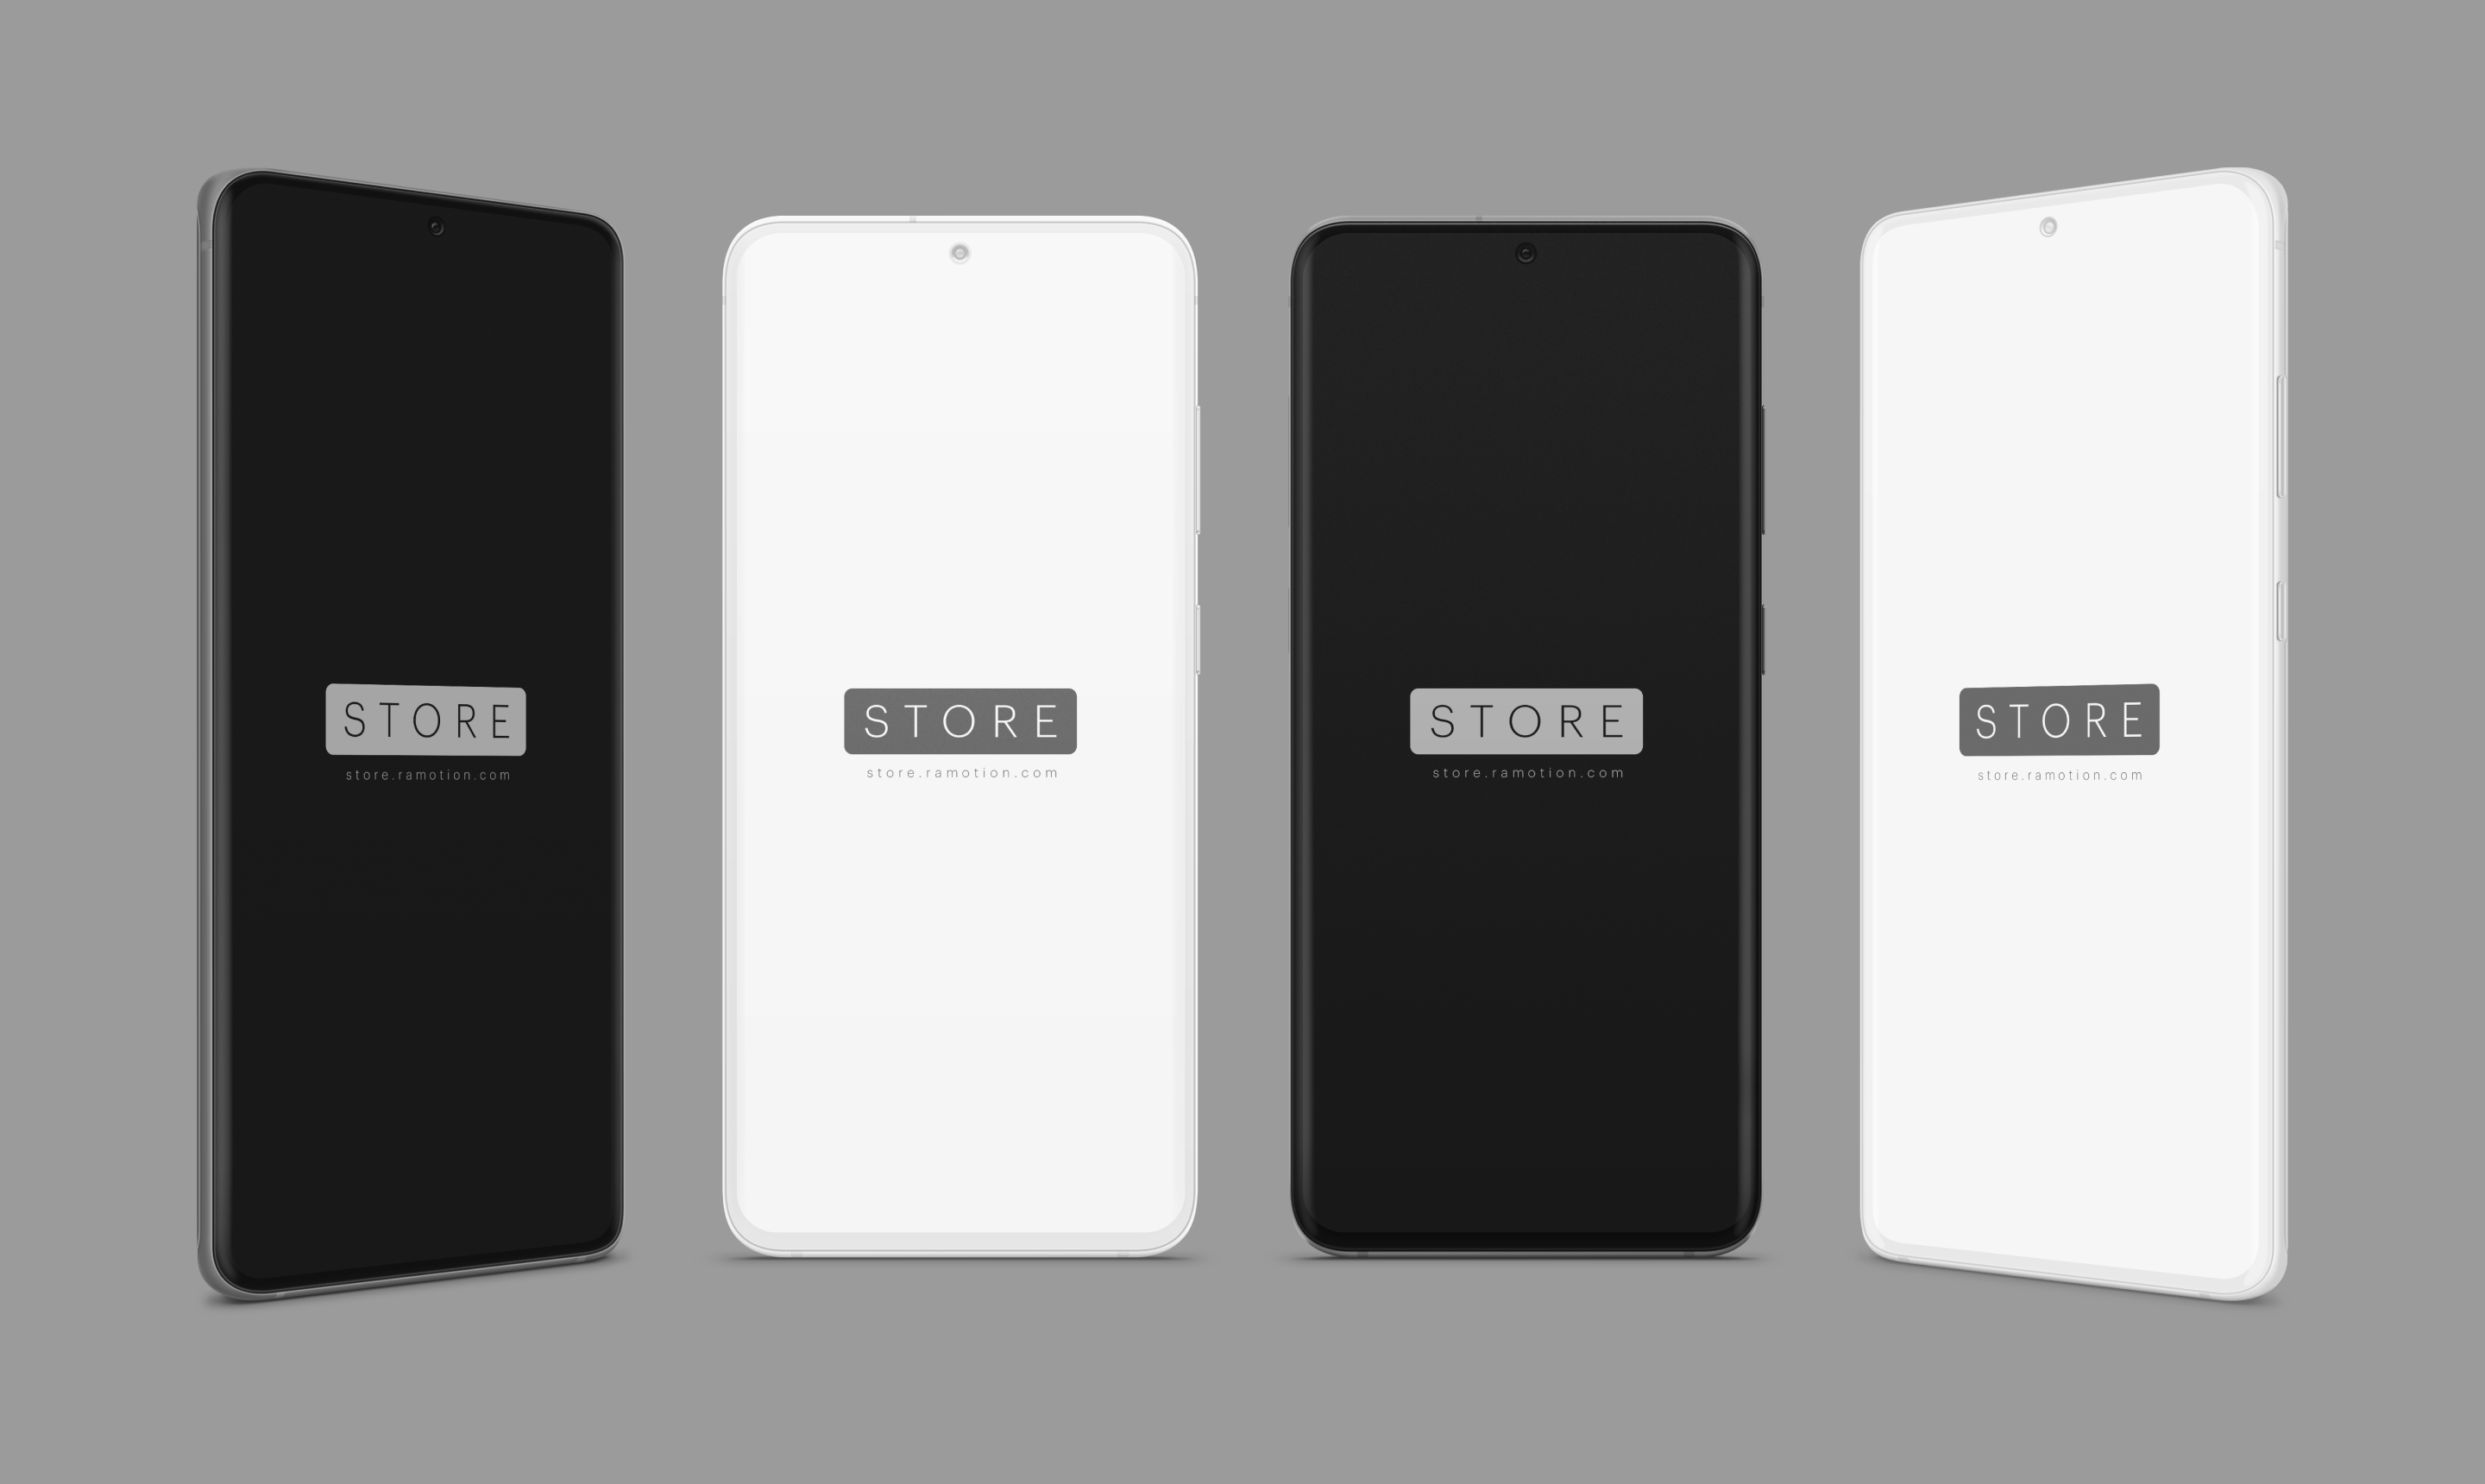 samsung galaxy s7 s8 black white frontal psd